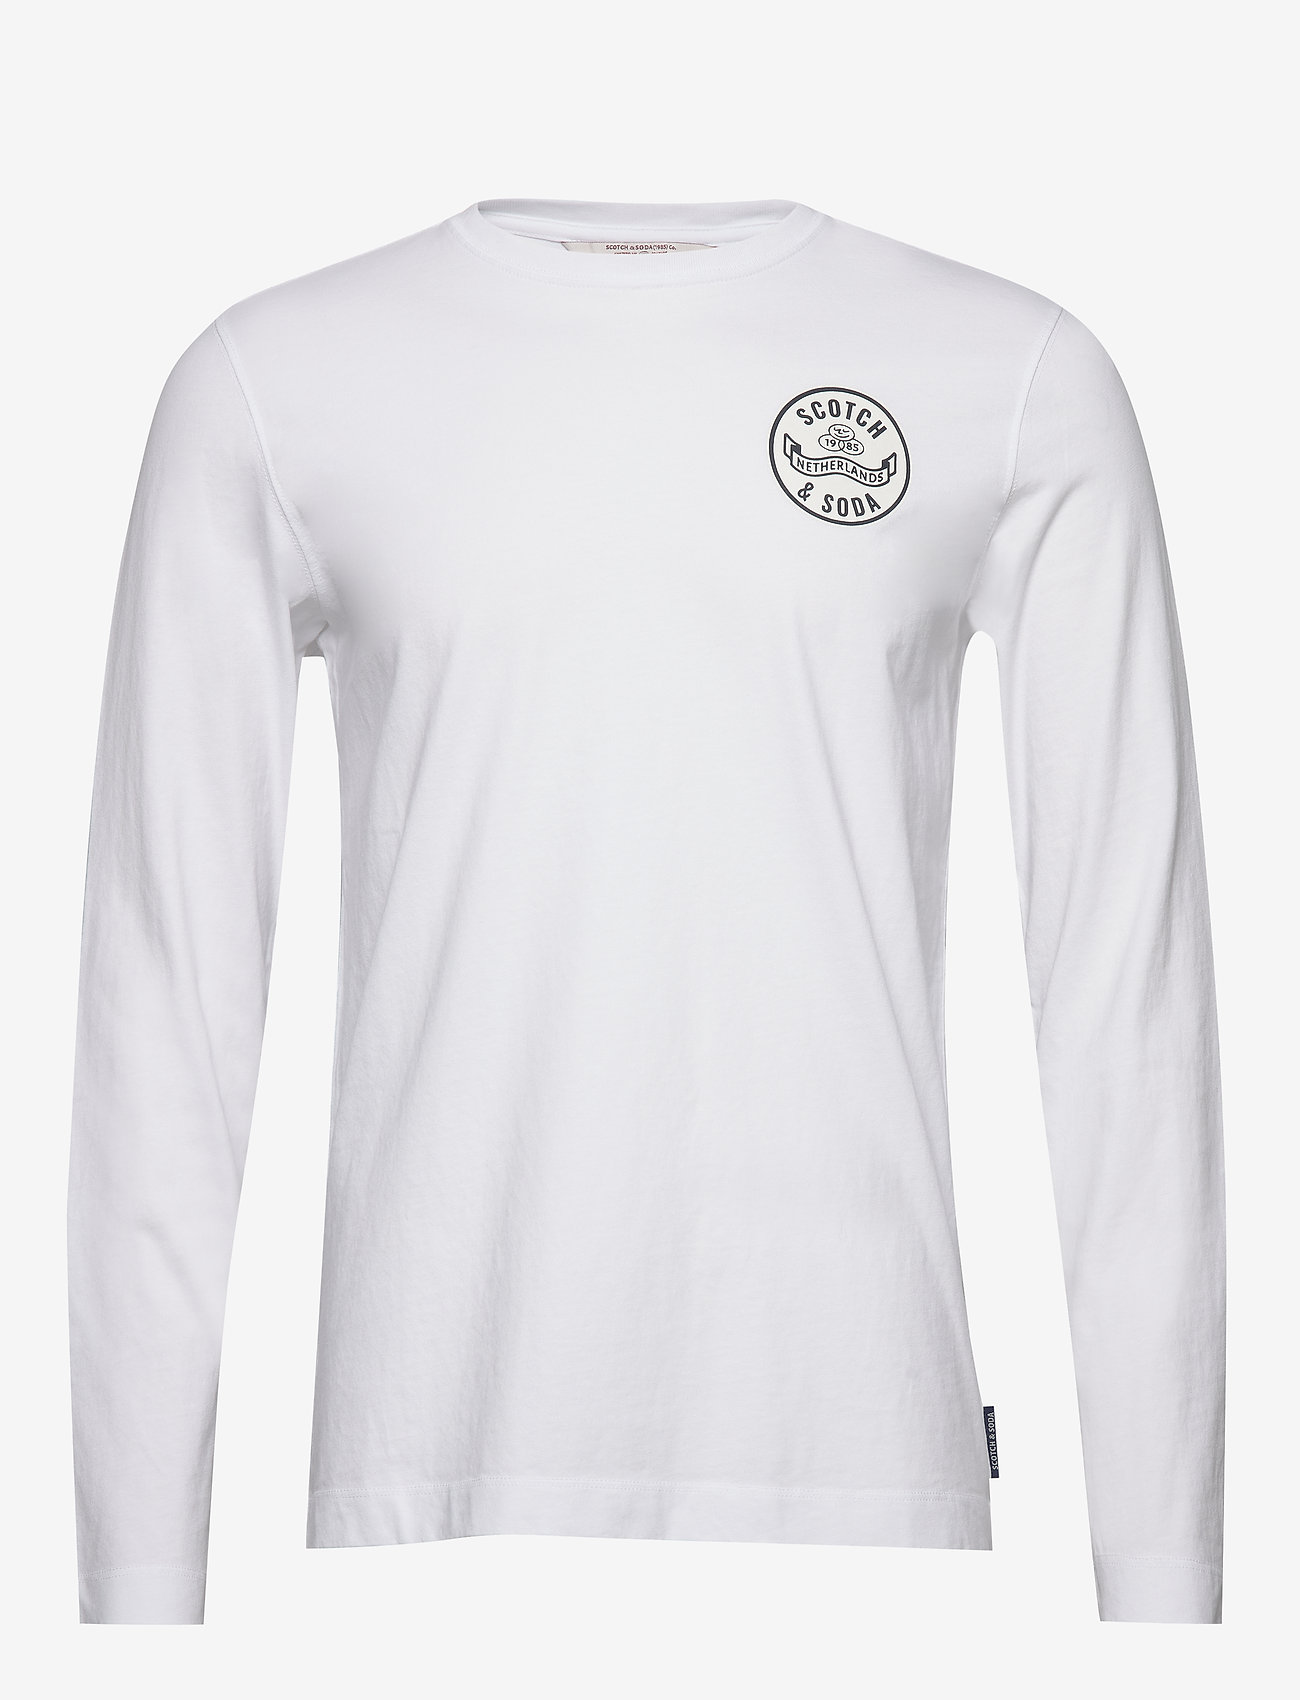 Scotch & Soda - Organic cotton longsleeve tee with chest artwork - t-shirts basiques - white - 0